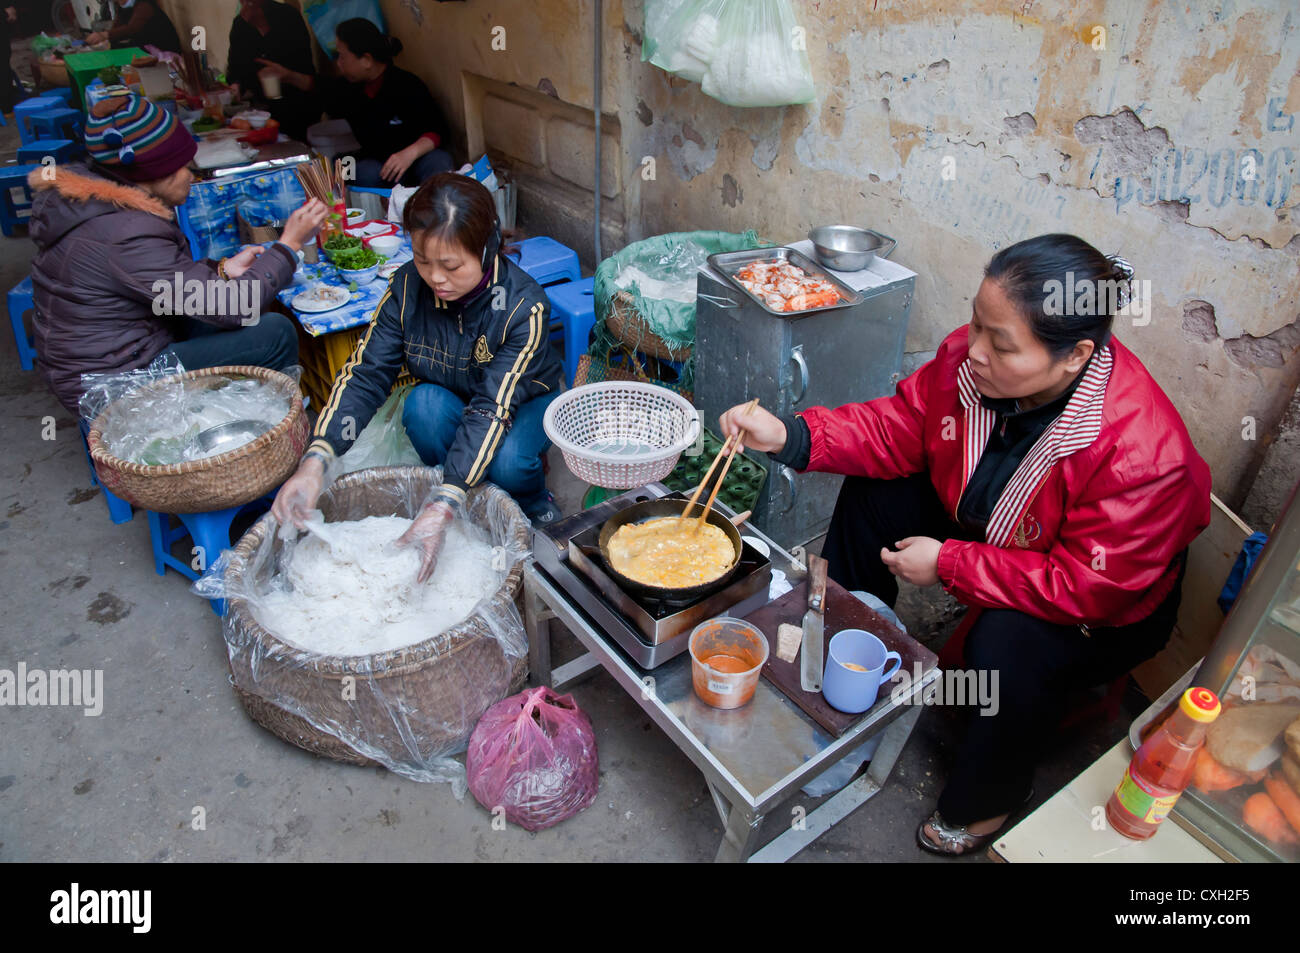 Stock Photo - Woman frying egg for a street food breakfast, Hanoi